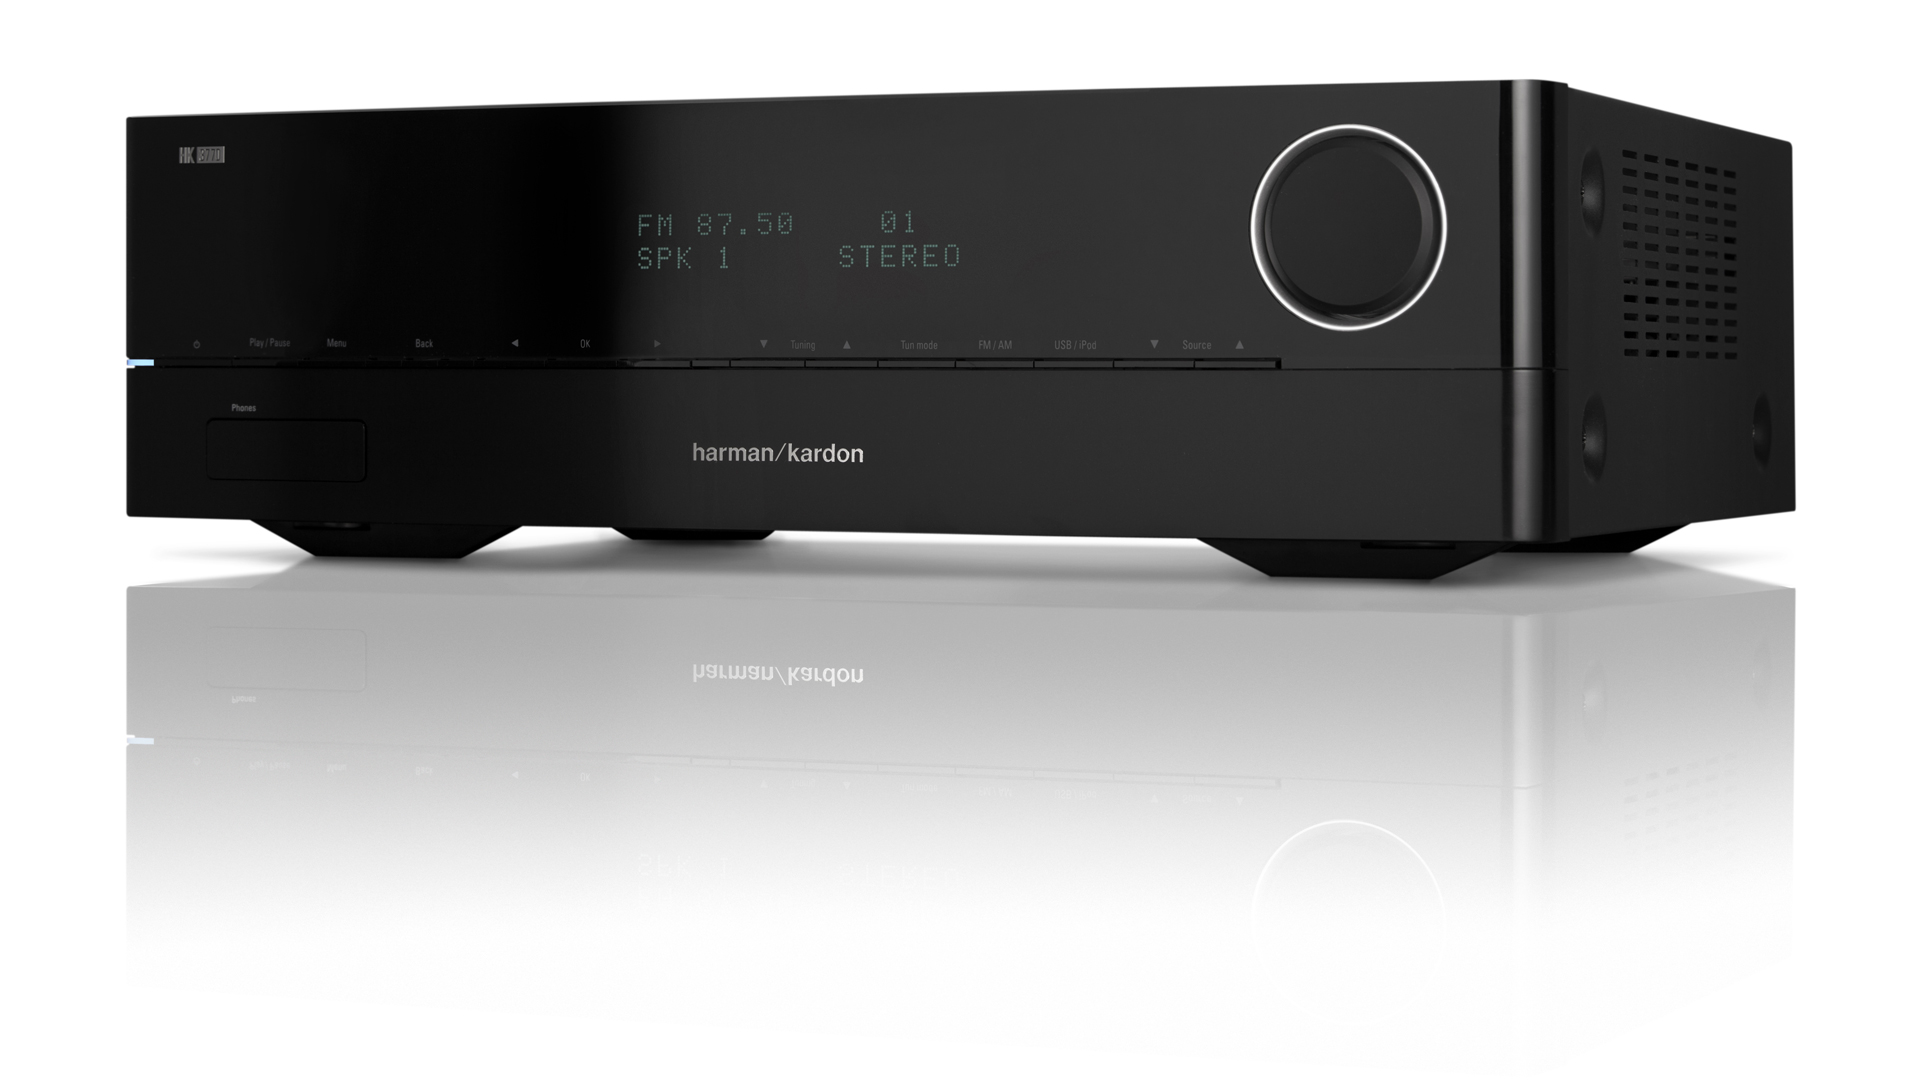 Harman / Kardon Receiver